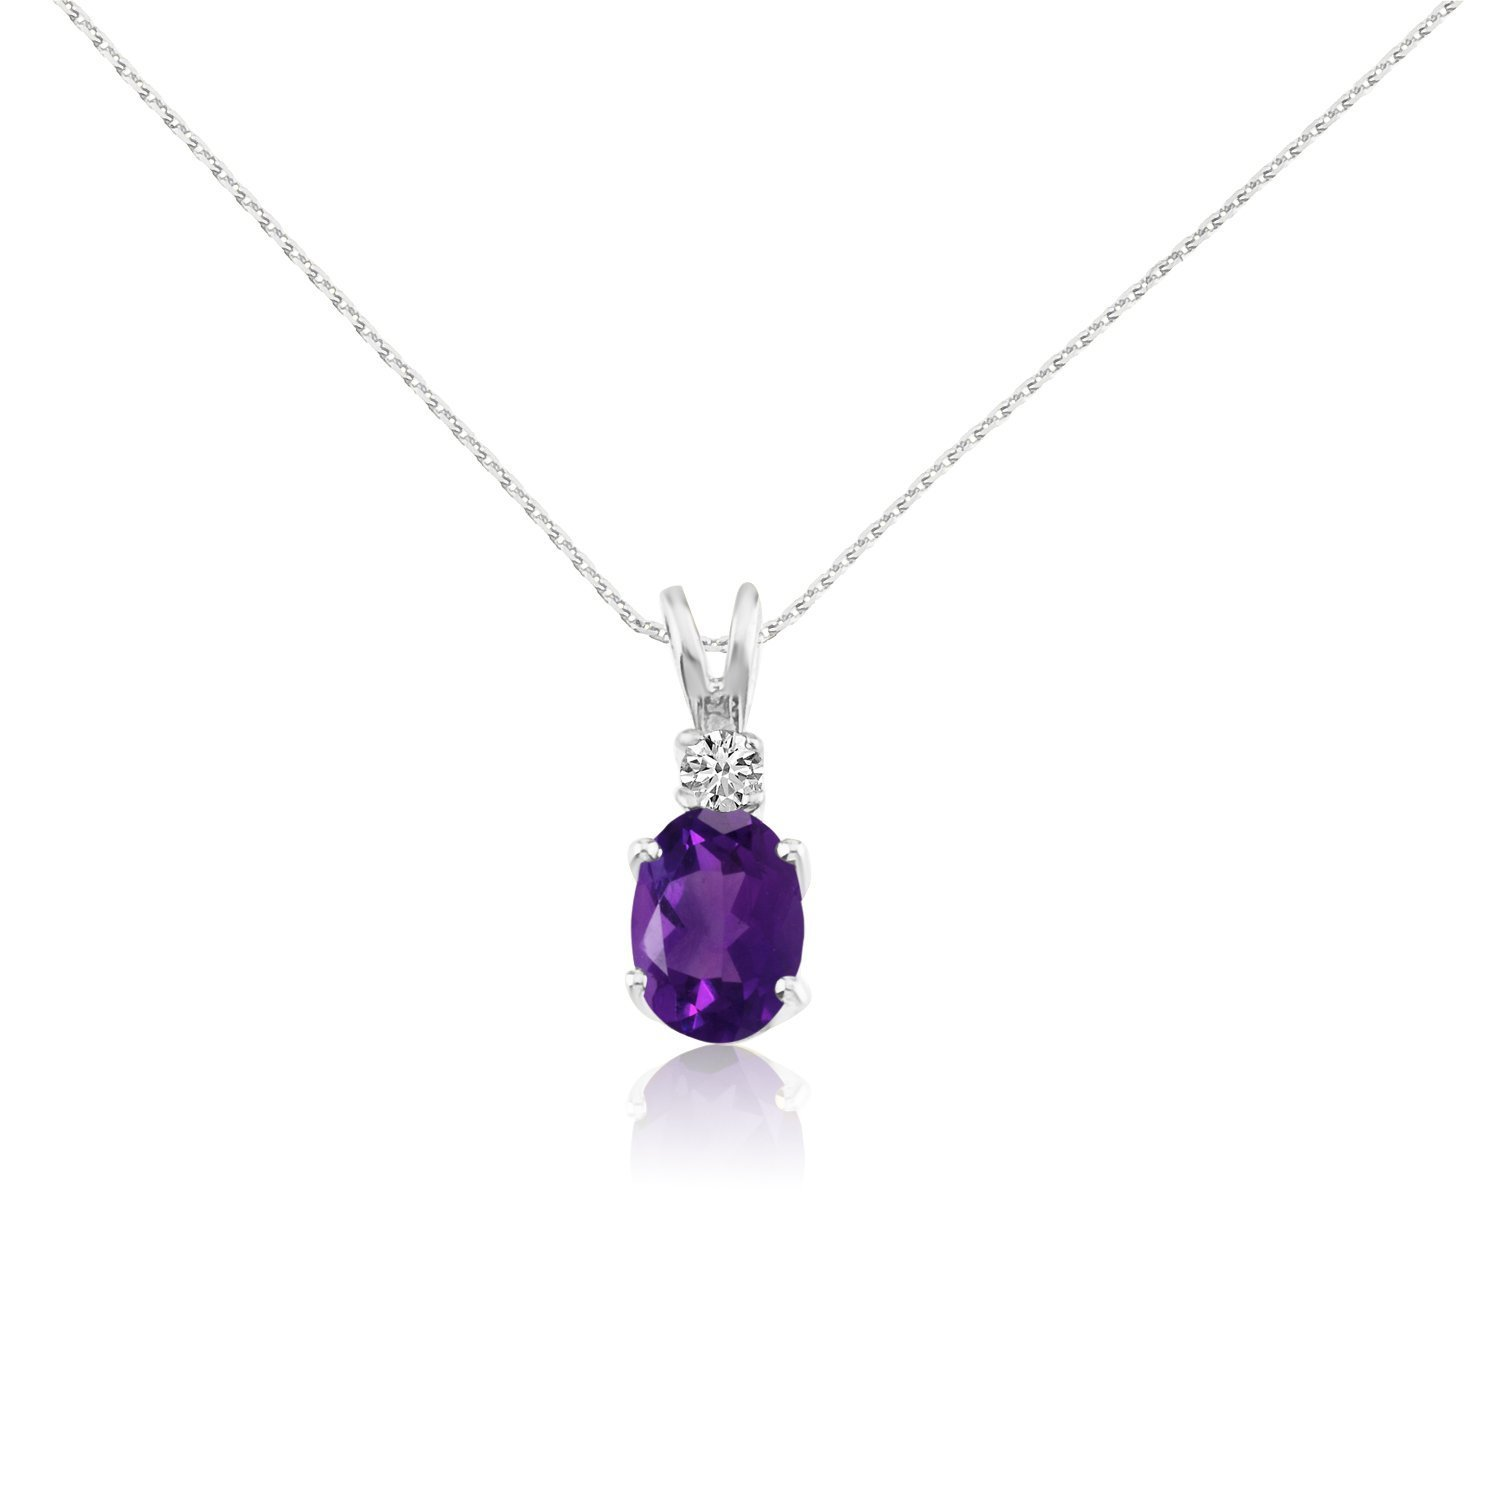 1.9 Cttw. FB Jewels Solid 14k White Oval Gemstone and Diamond Pendant